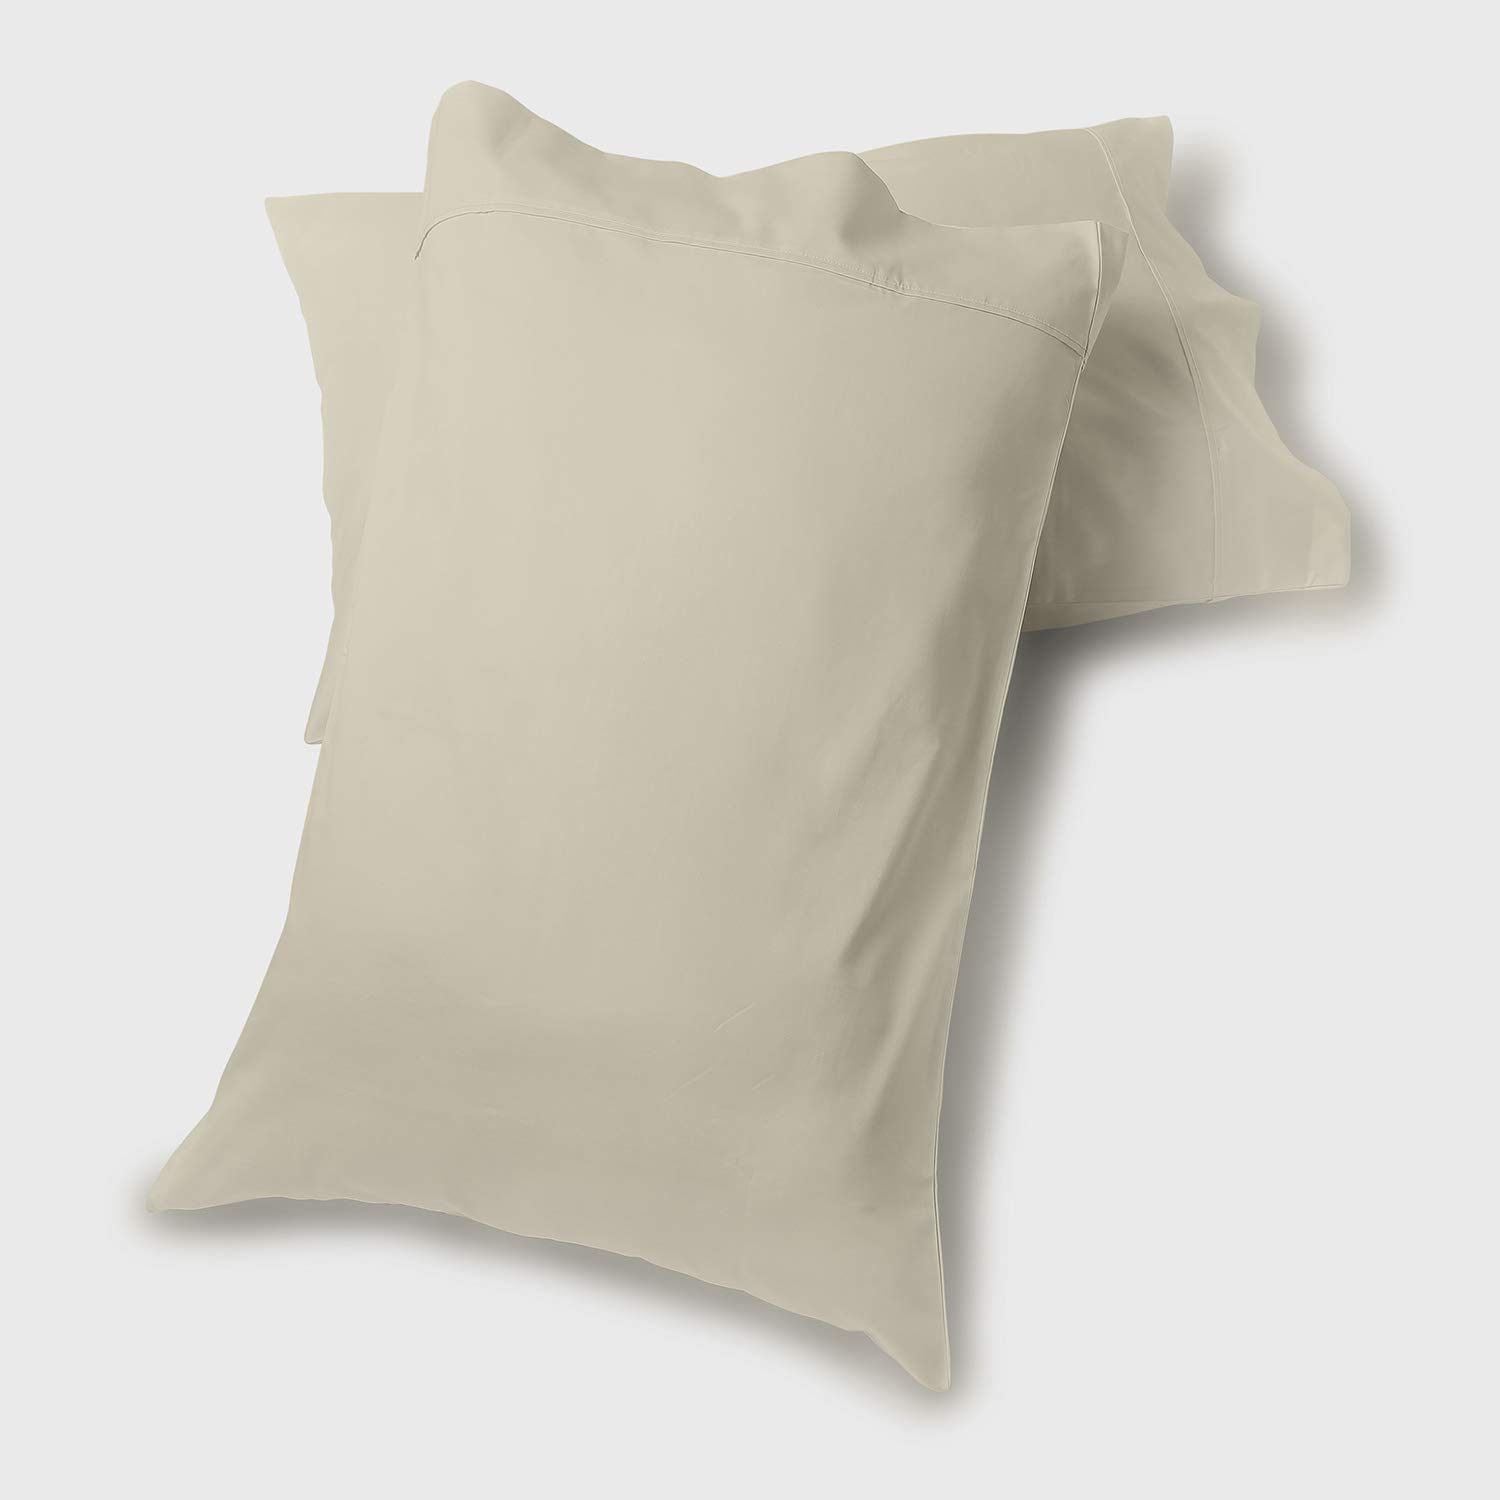 """Fisher West New York The Village 500 Thread Count - Ivory Standard Pillow Case Set 21"""" X 30"""" - Soft, Cozy, Durable - Crafted from Natural, Breathable Cotton Fabric - Made for Sound Sleep"""